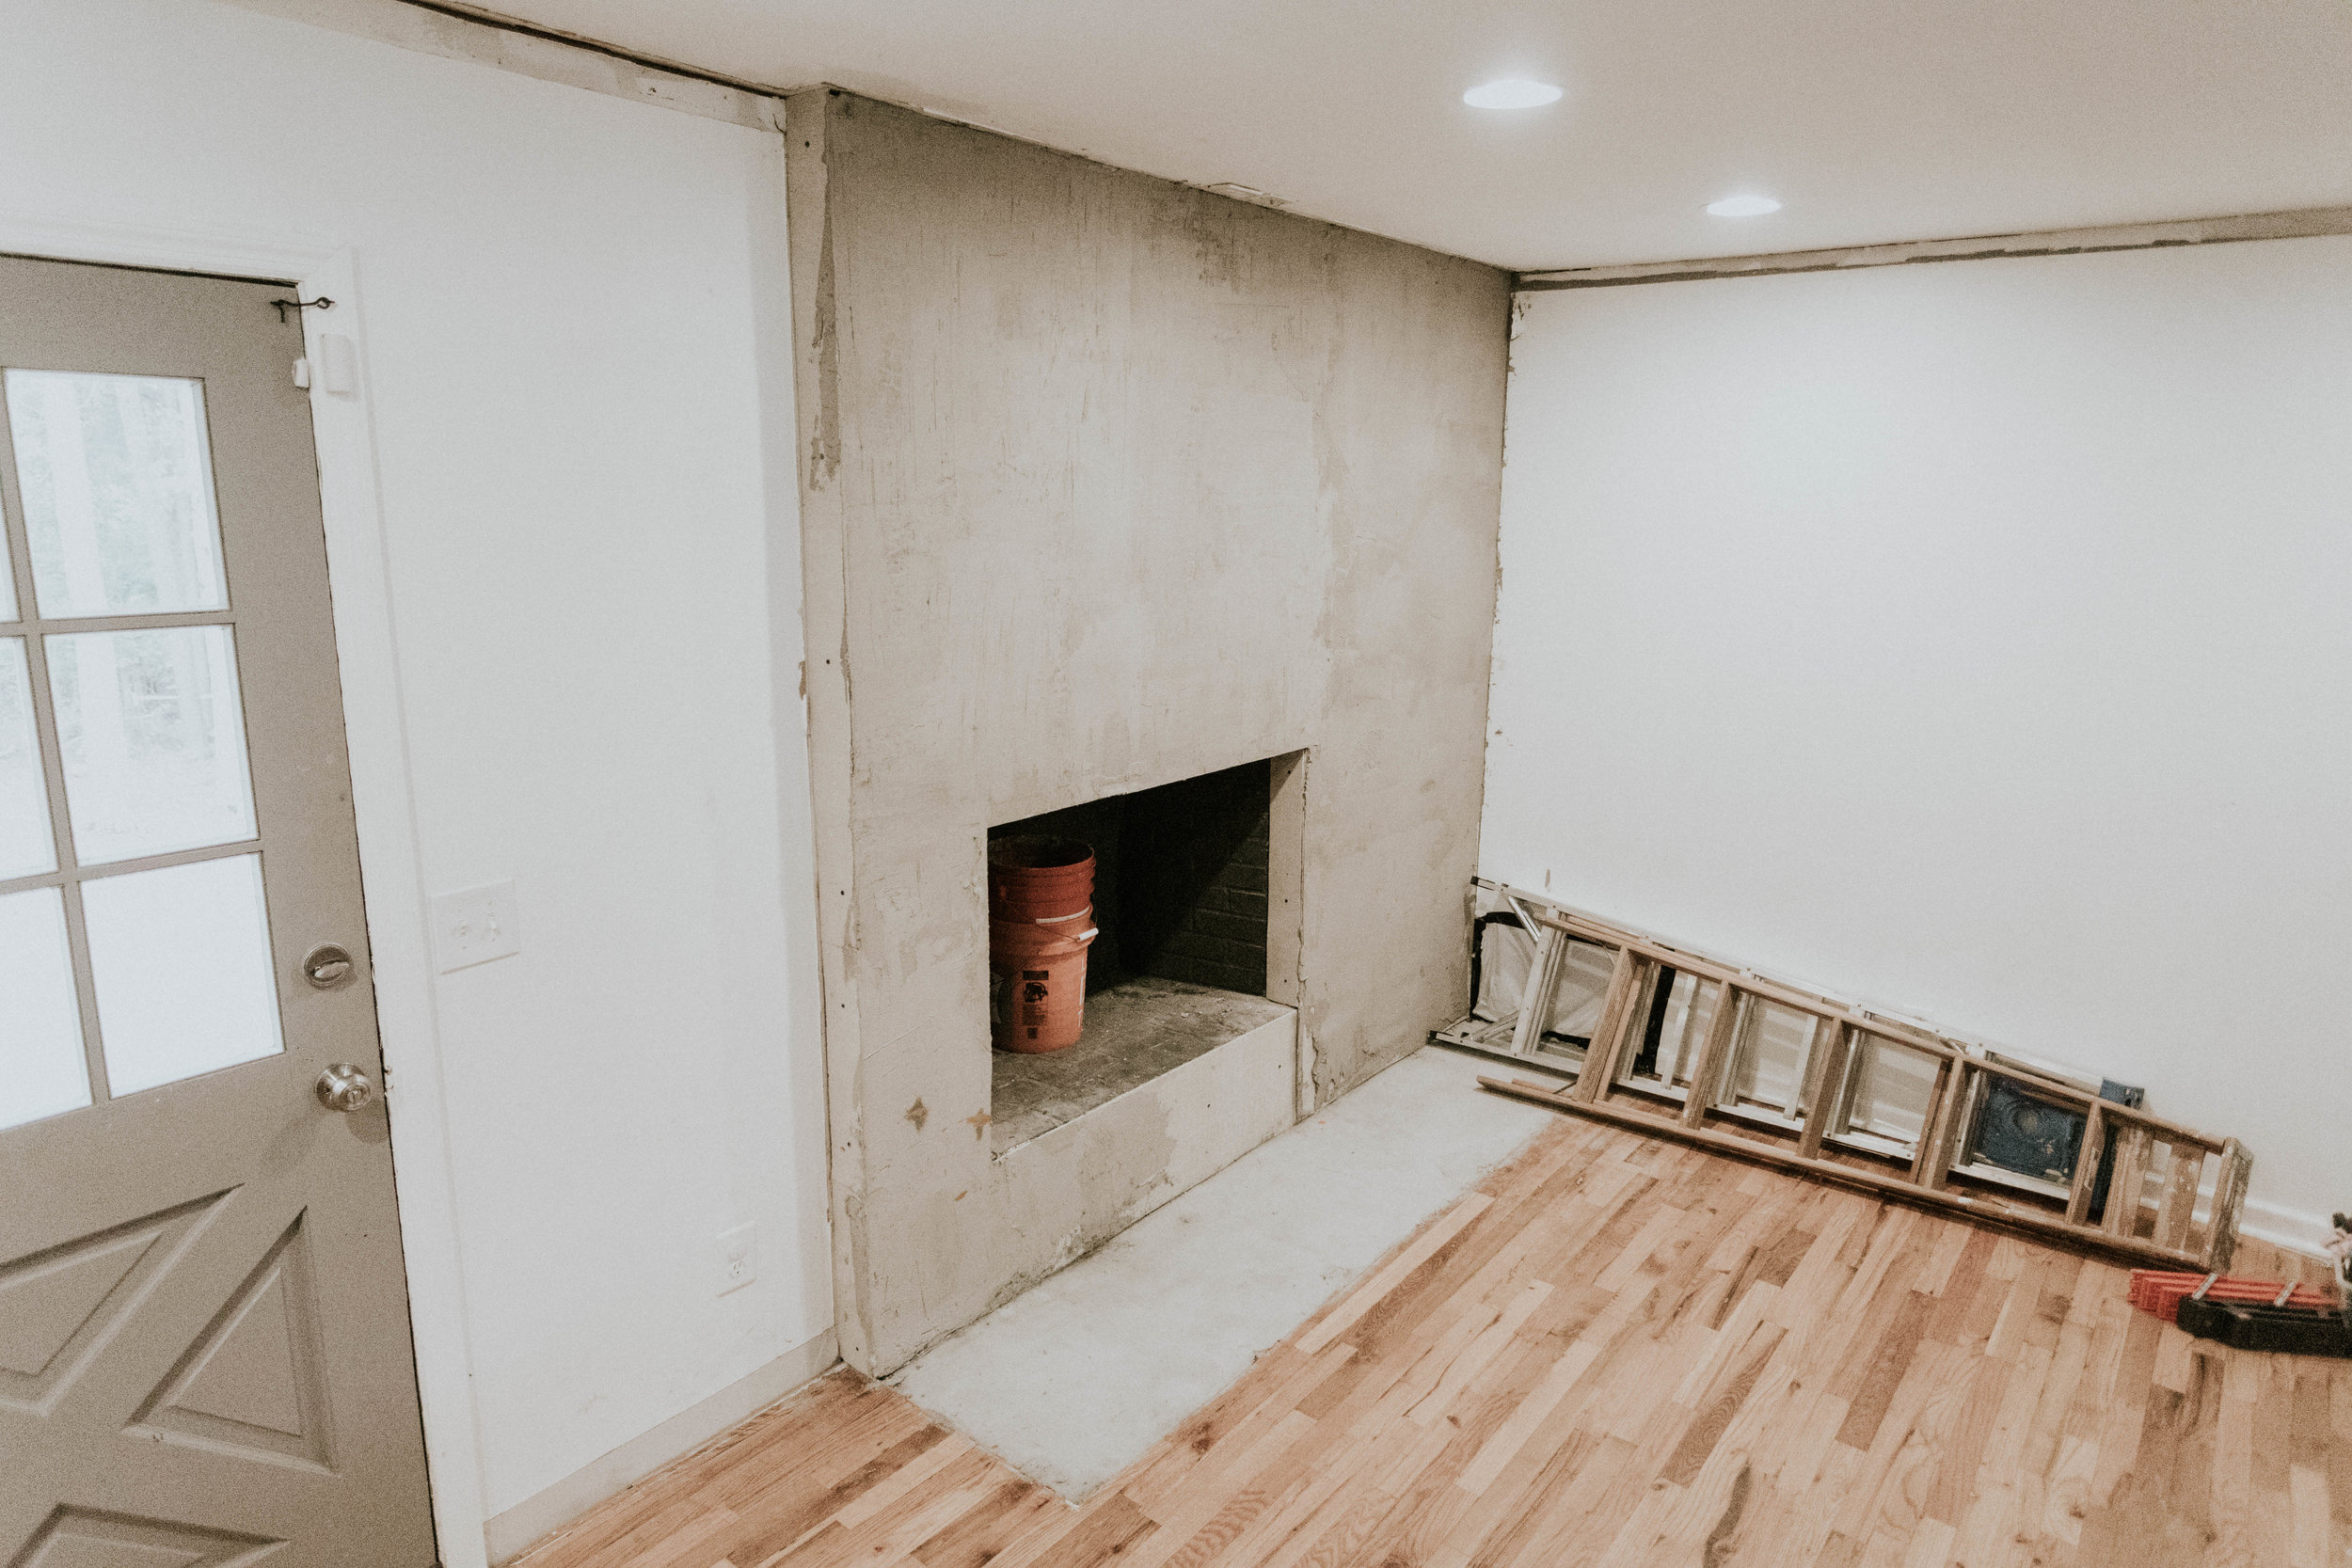 HOW TO TRANSFORM YOUR FIREPLACE FROM FARMHOUSE TO MODERN